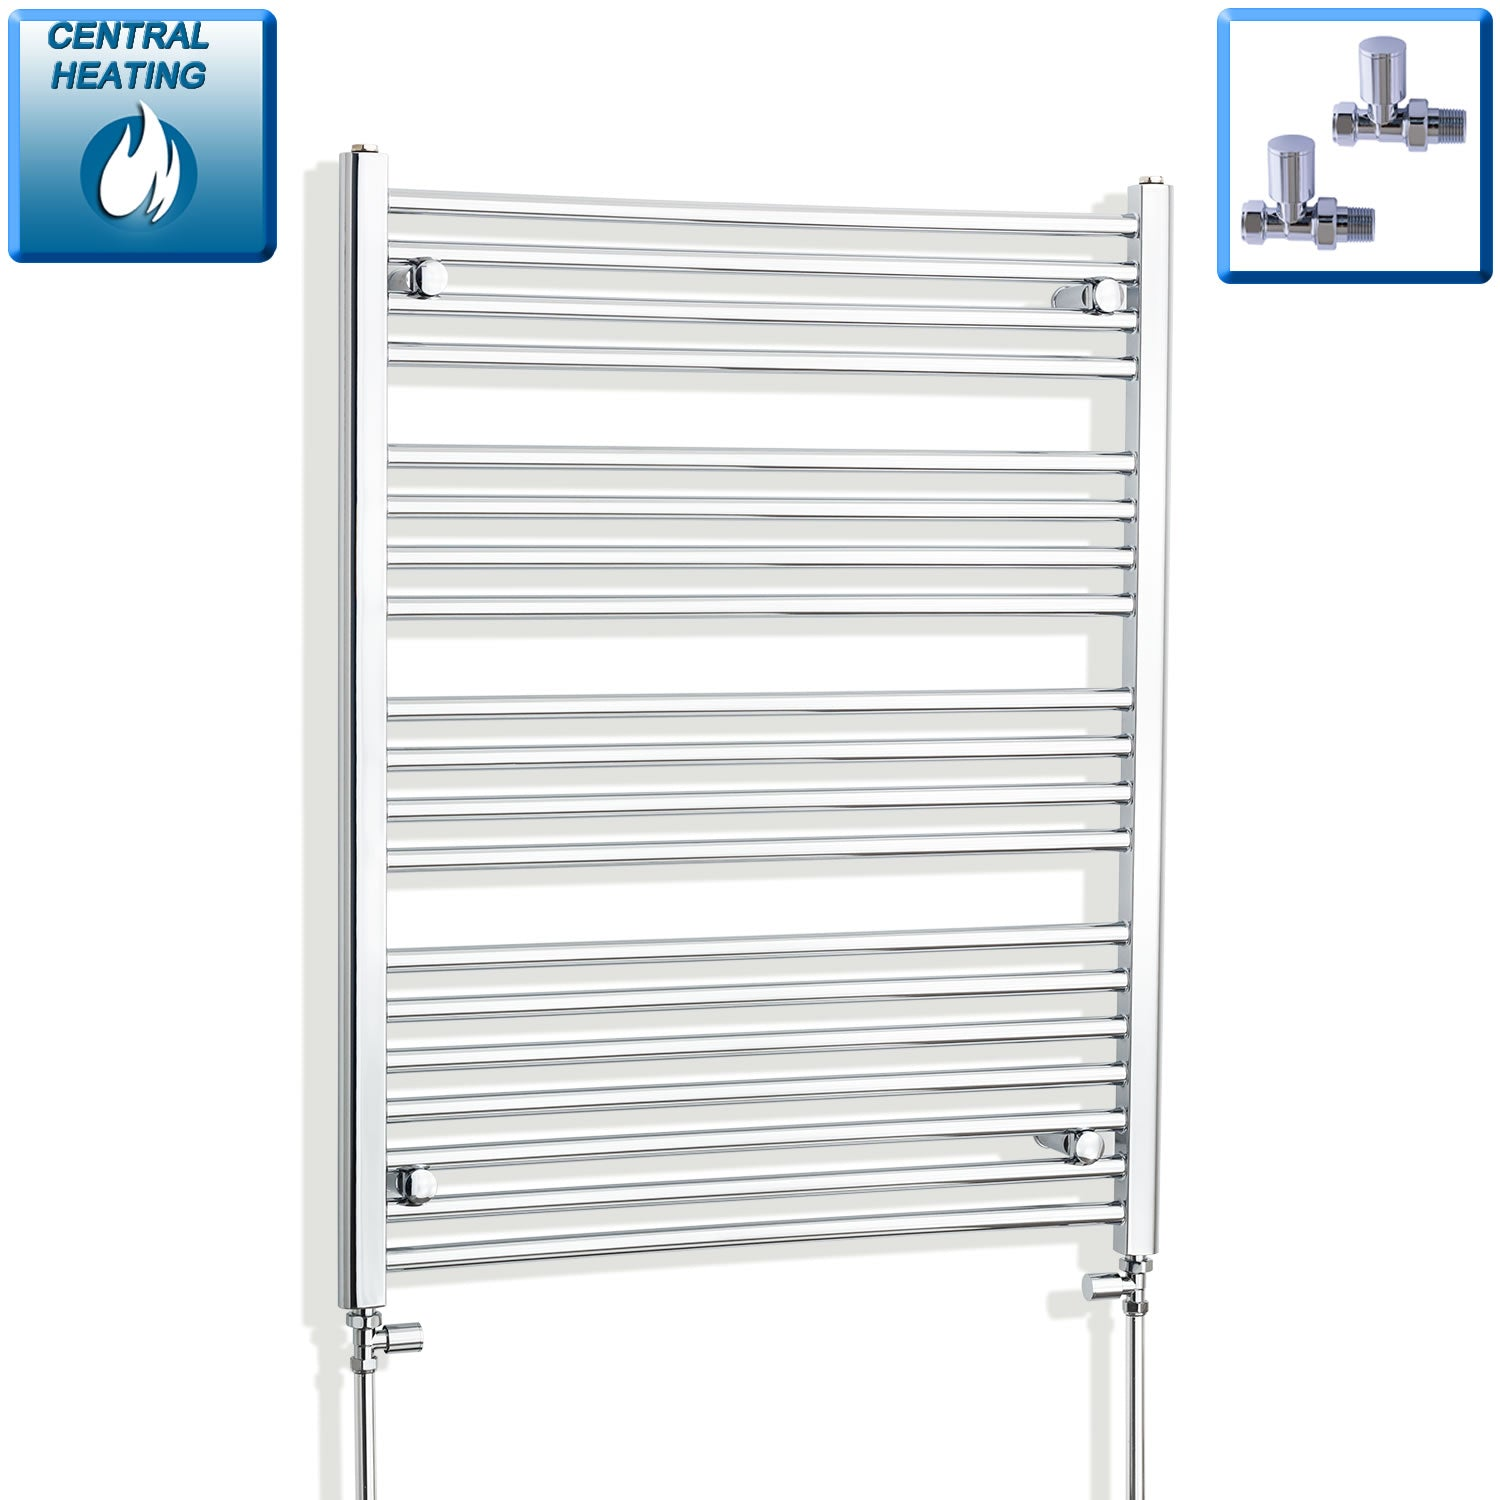 750mm Wide 1000mm High Flat Chrome Heated Towel Rail Radiator HTR,With Straight Valve